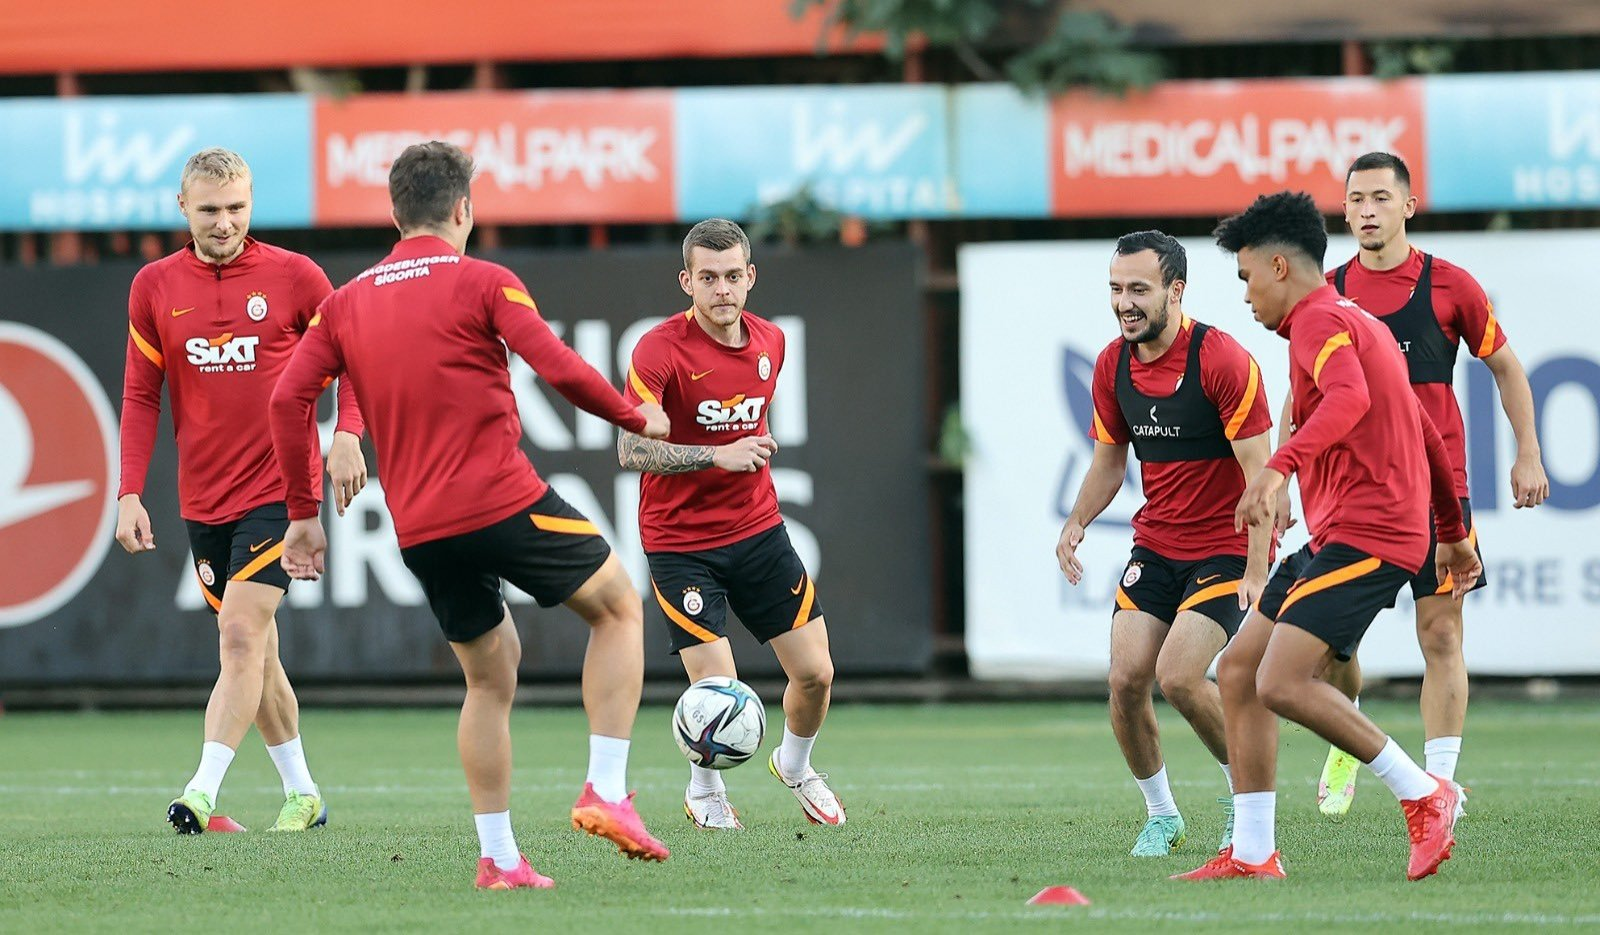 Galatasaray players attend a training session ahead of a Süper Lig match against Trabzonspor, Istanbul, Turkey, Sept. 10, 2021. (DHA Photo)